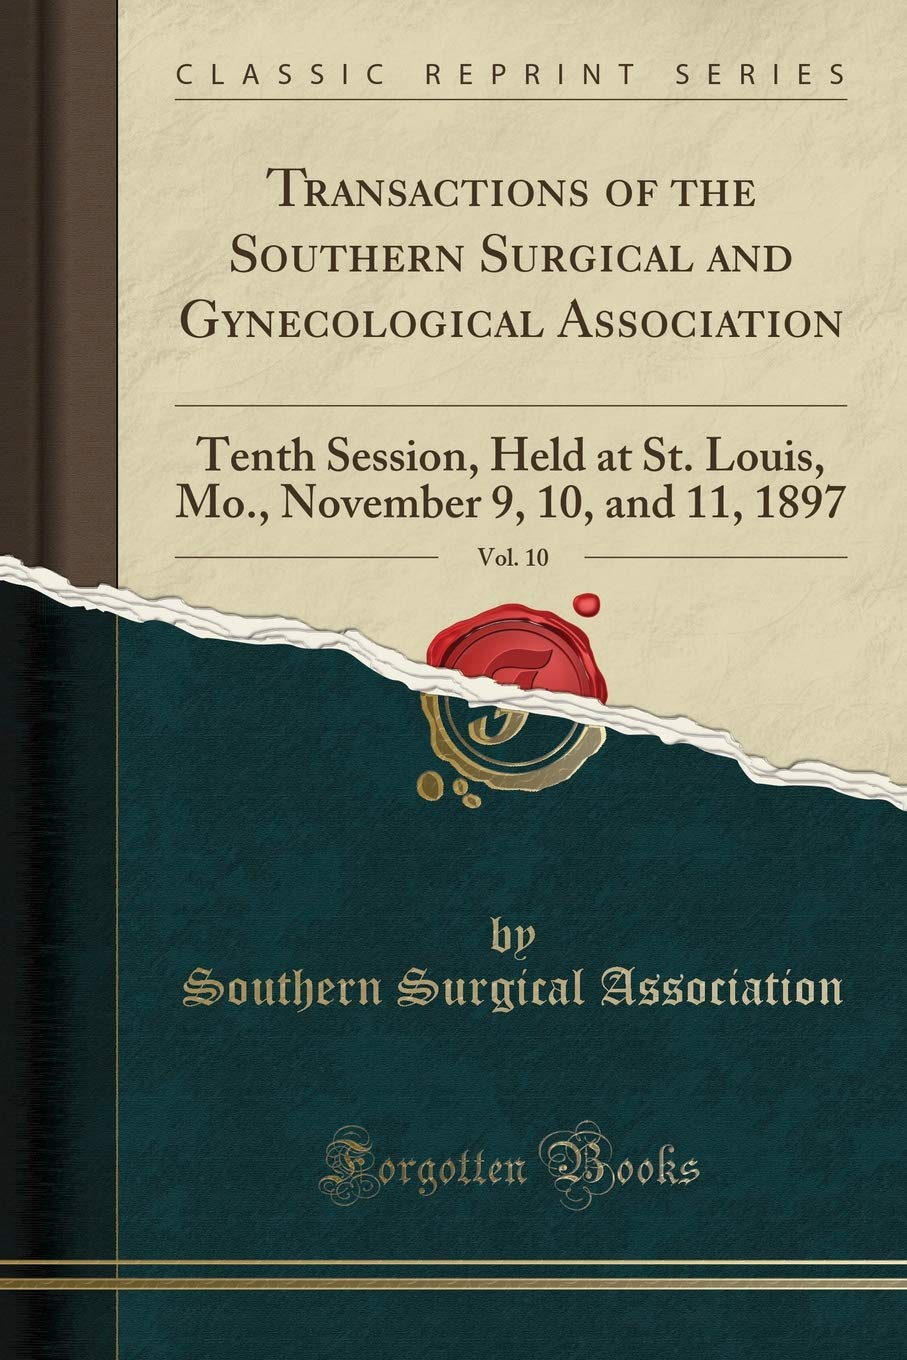 Transactions of the Southern Surgical and Gynecological Association, Vol. 10: Tenth Session, Held at St. Louis, Mo., November 9, 10, and 11, 1897 (Classic Reprint) by Forgotten Books